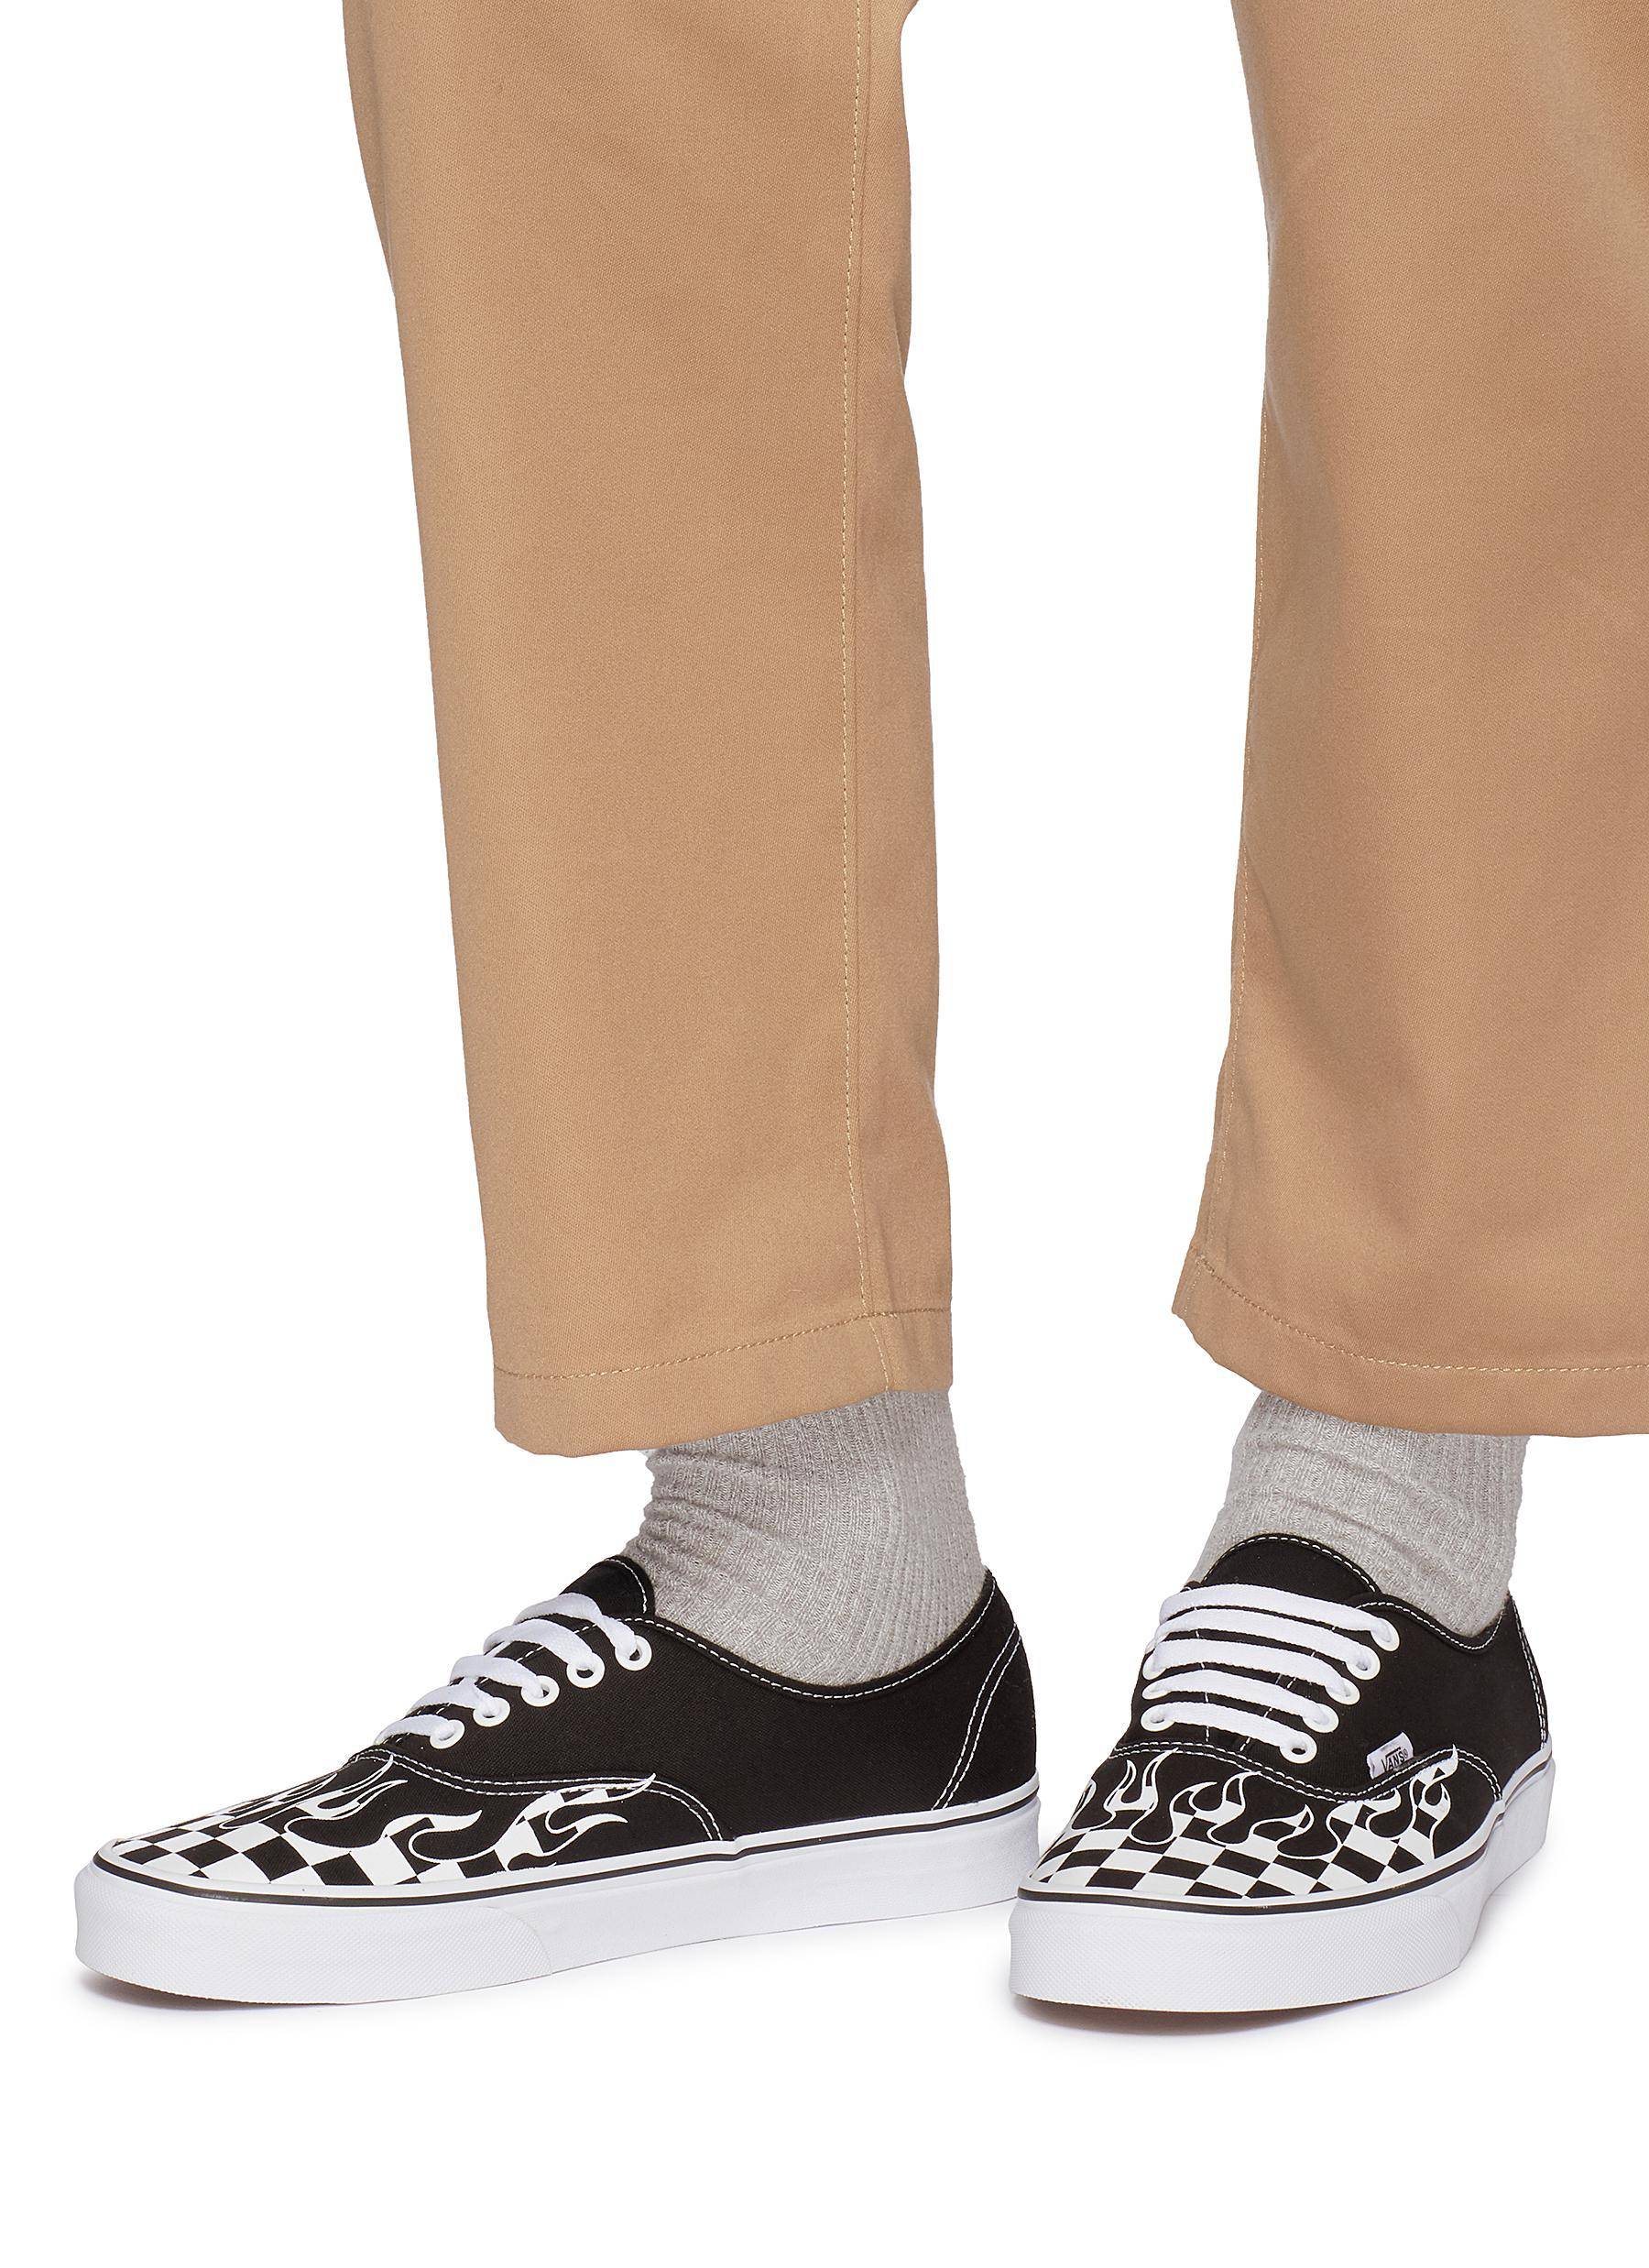 Vans - Black  authentic  Checkerboard Flame Canvas Sneakers for Men - Lyst.  View fullscreen fb5858e50